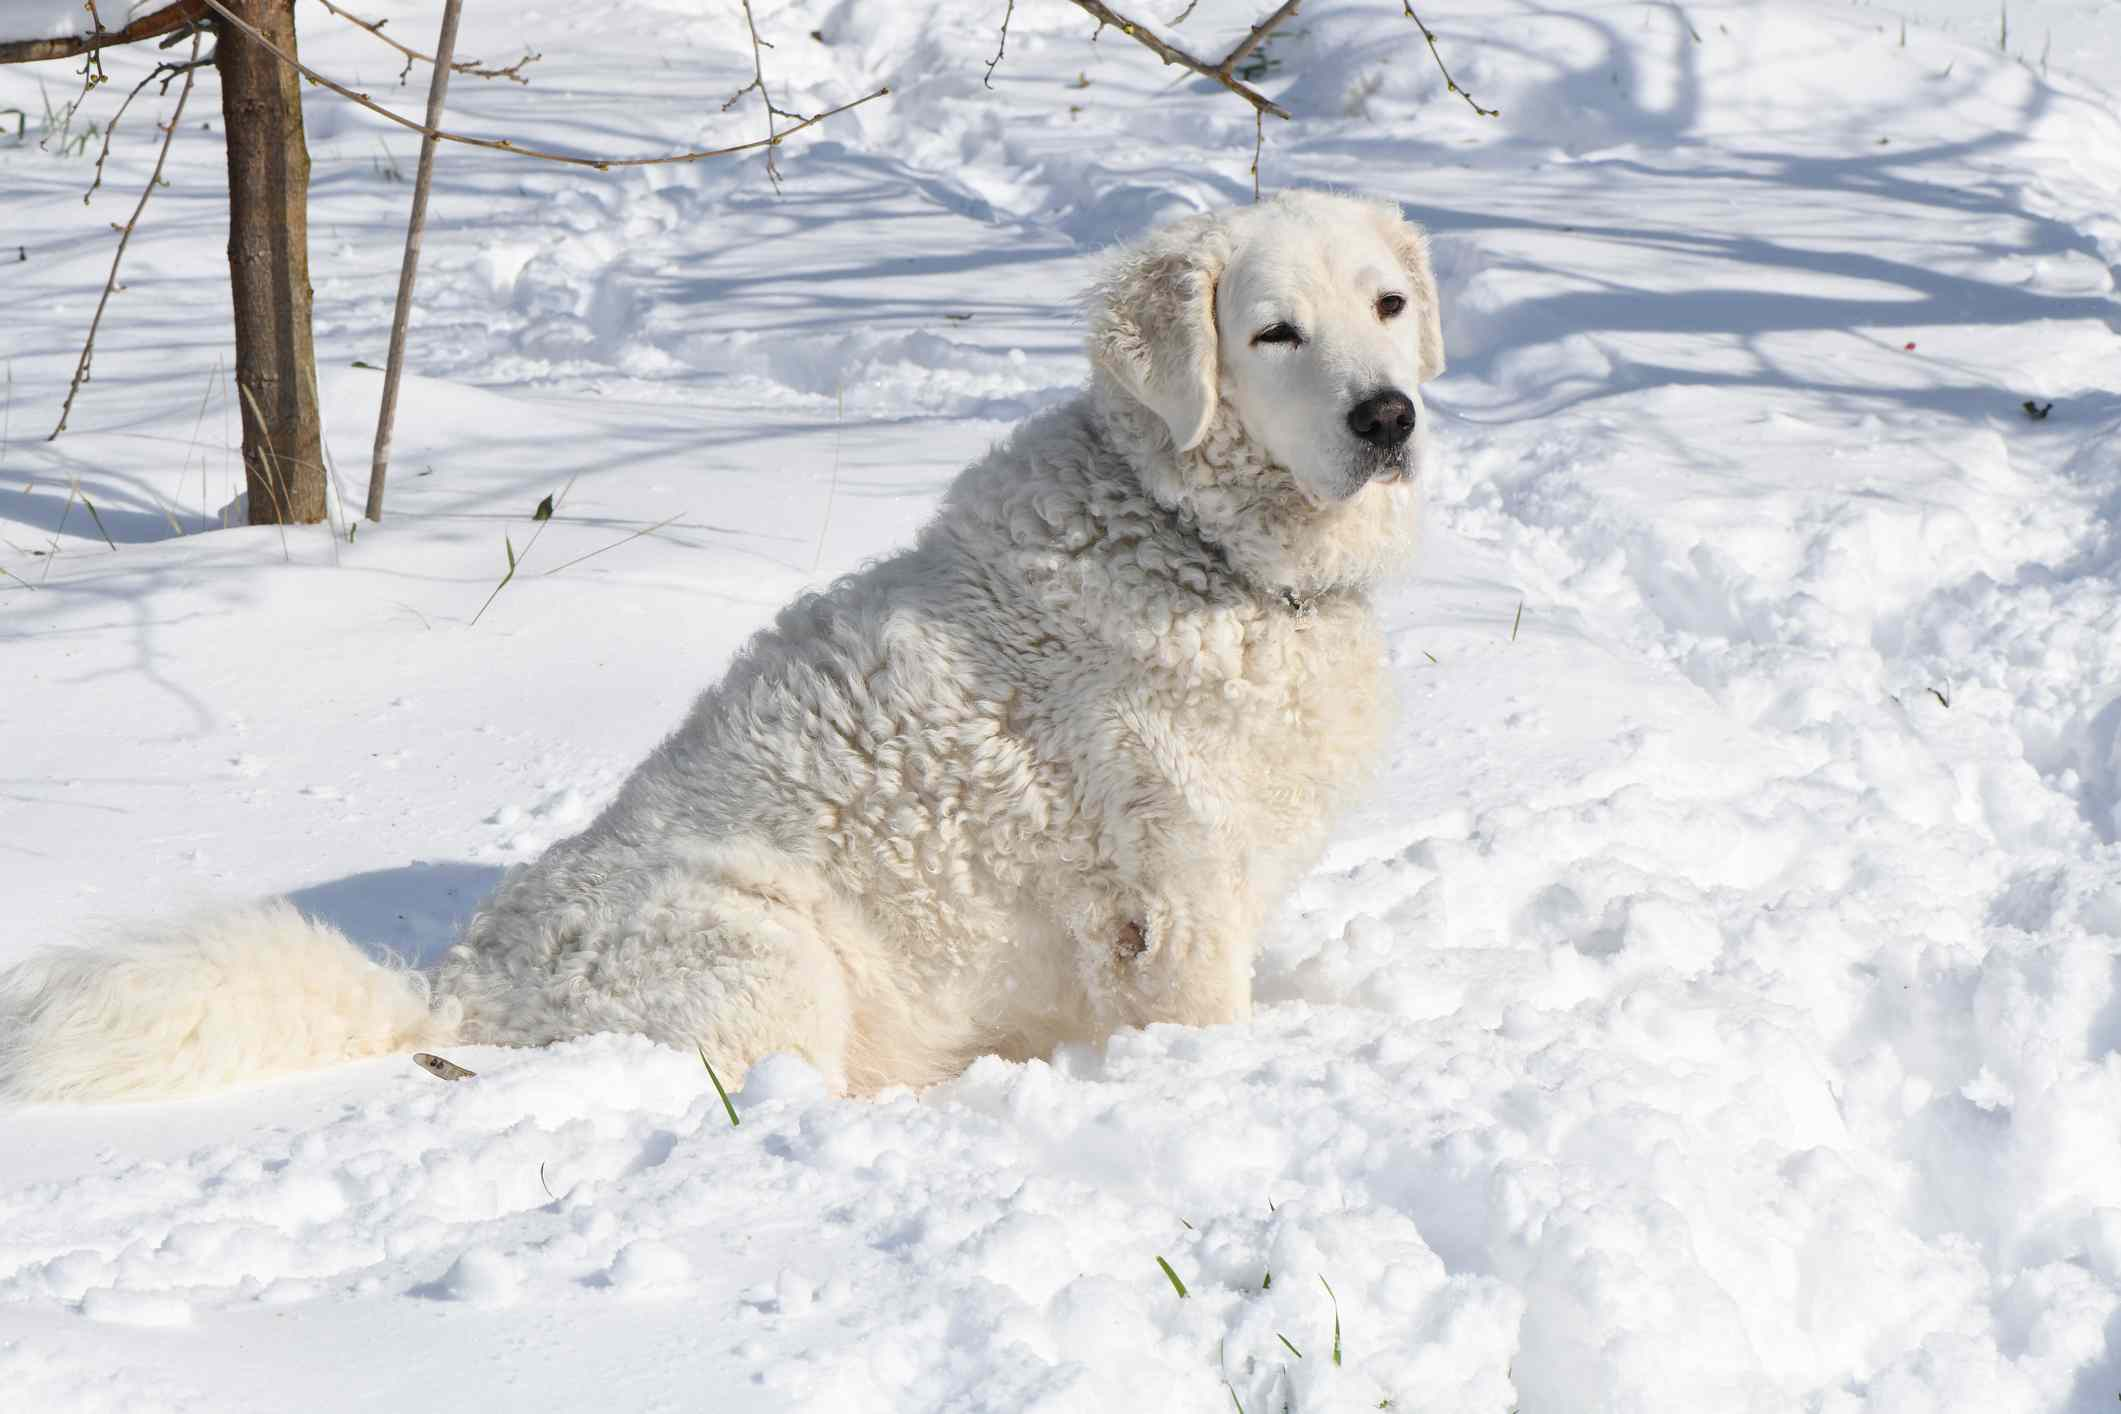 A Kuvasz Dog in the snow